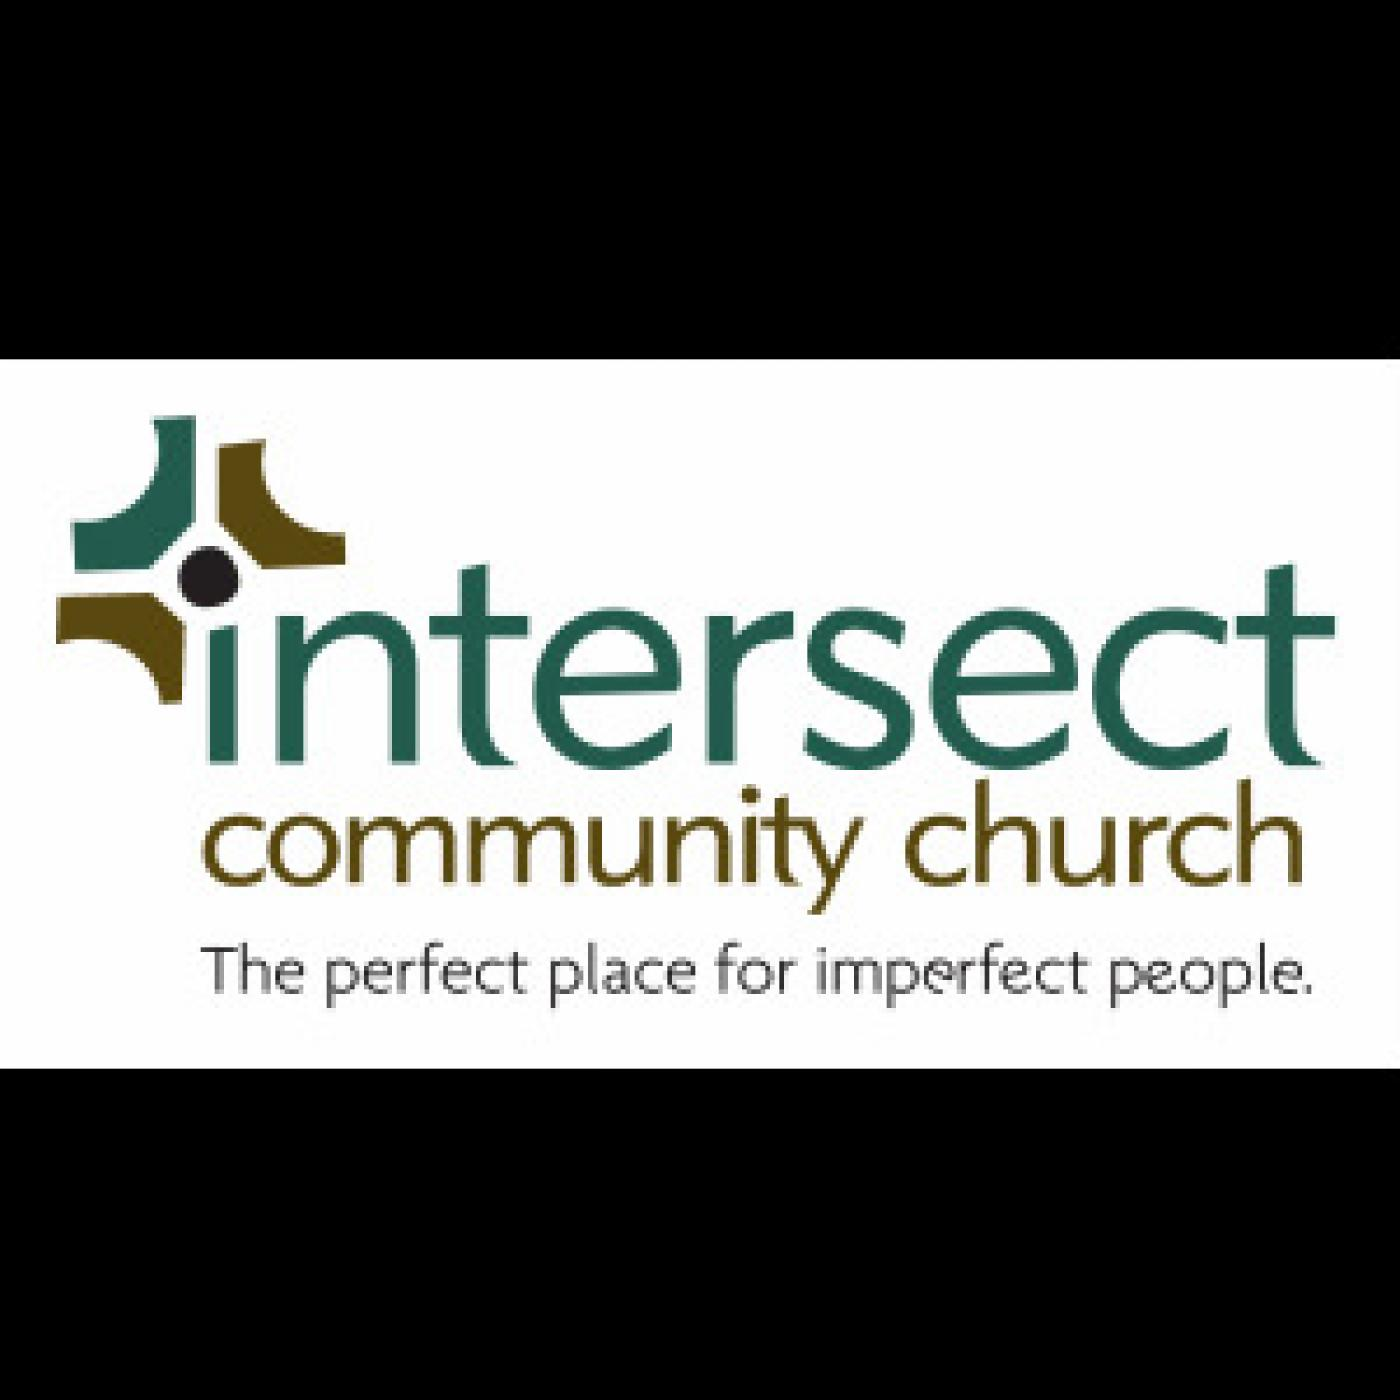 Intersect Community Church